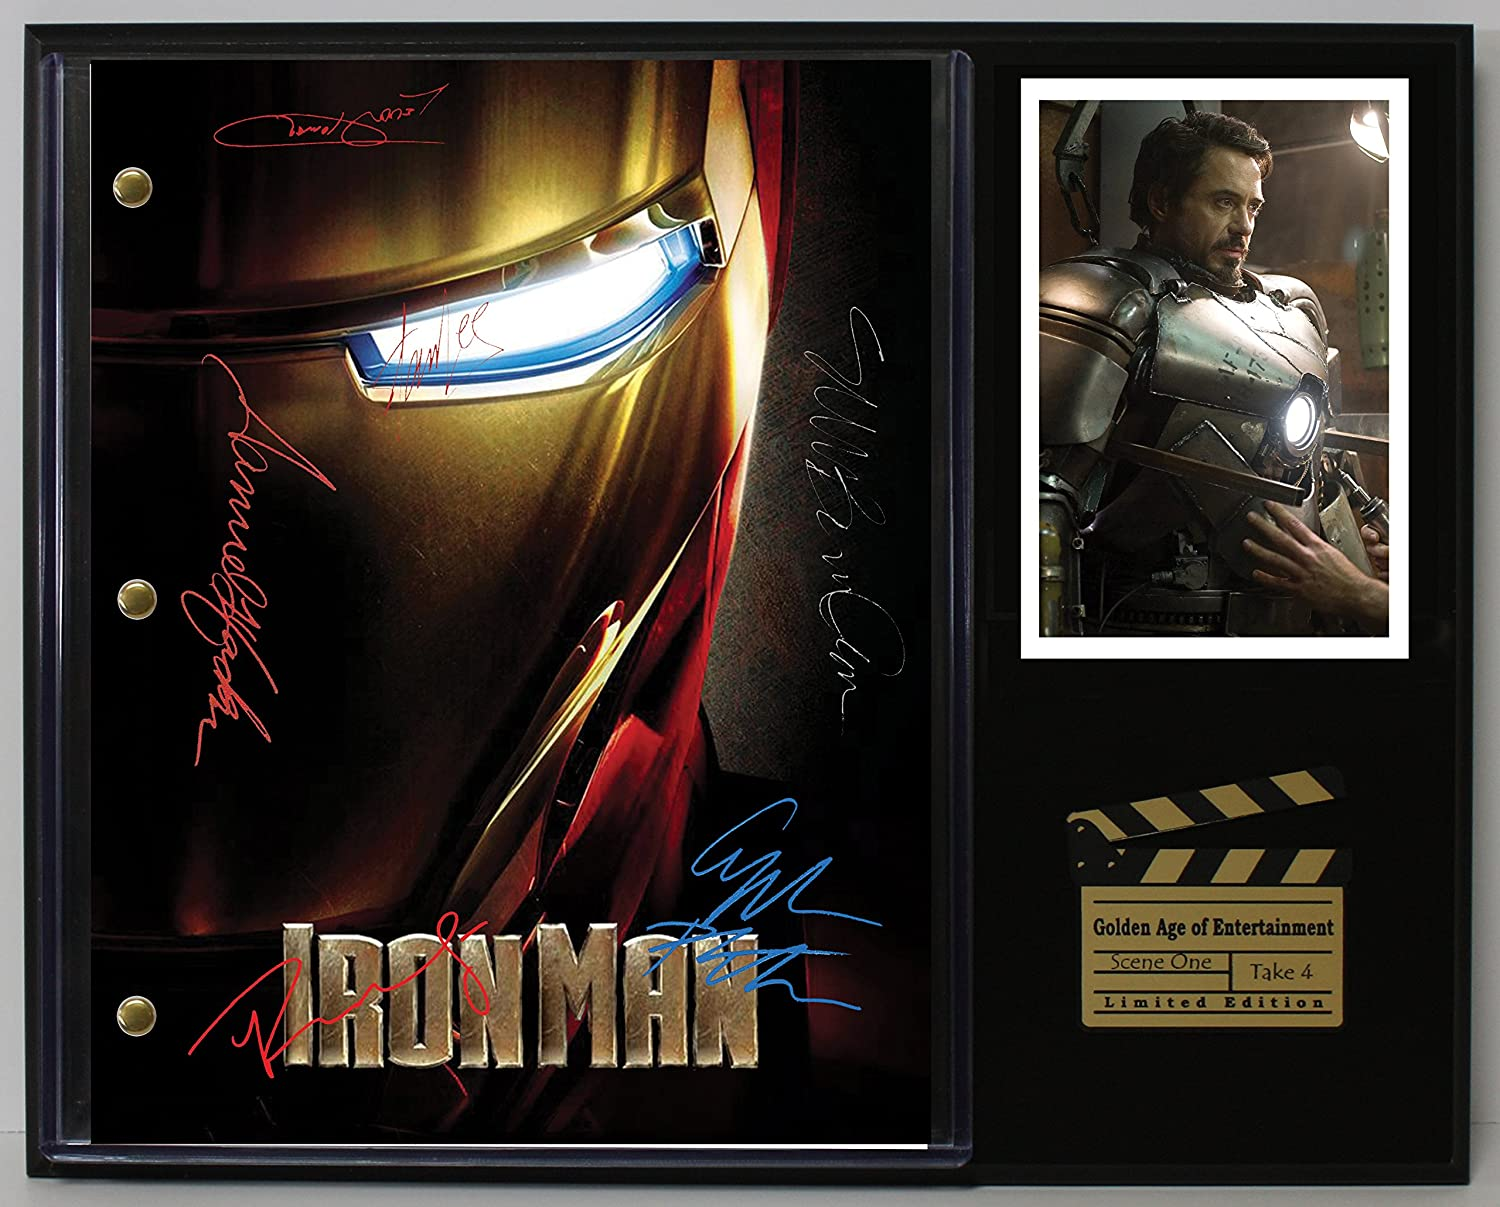 IRON MAN LTD EDITION REPRODUCTION SIGNED CINEMA SCRIPT DISPLAY'C3'